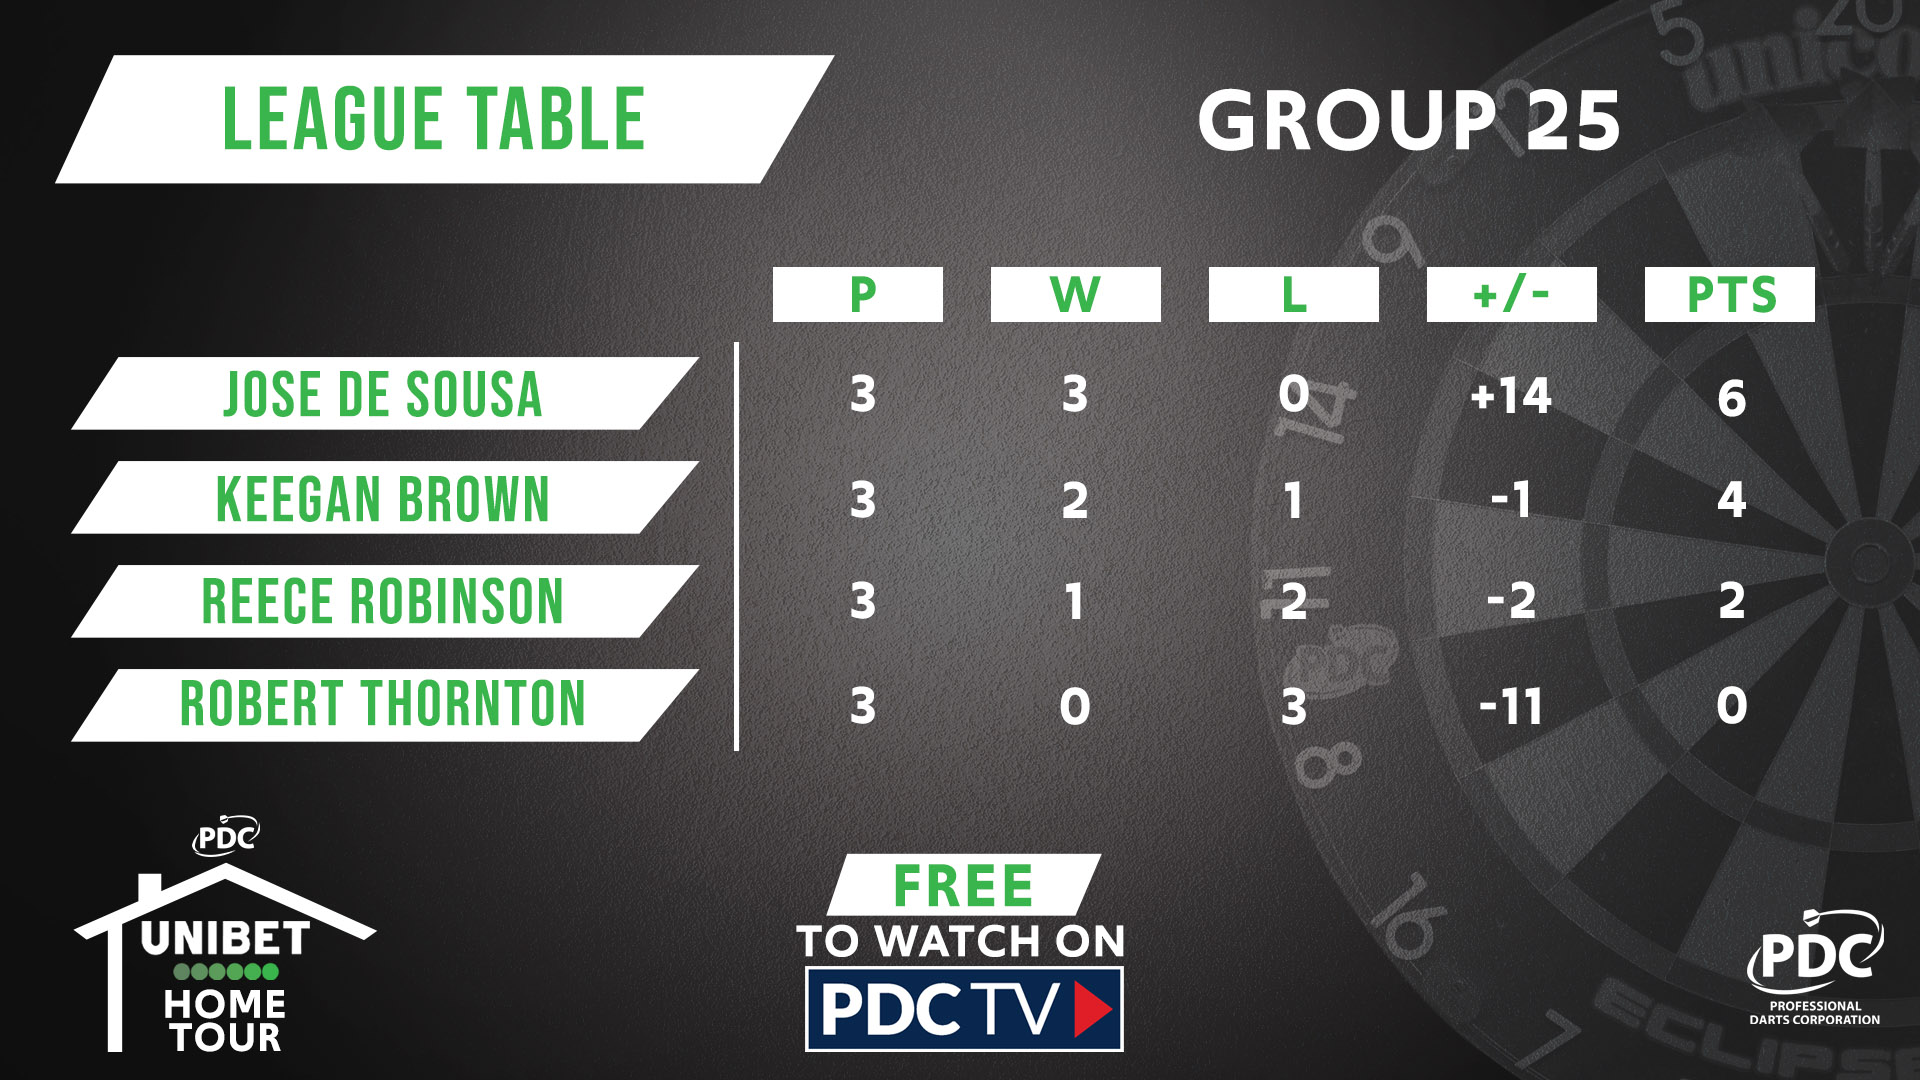 Group 25 table